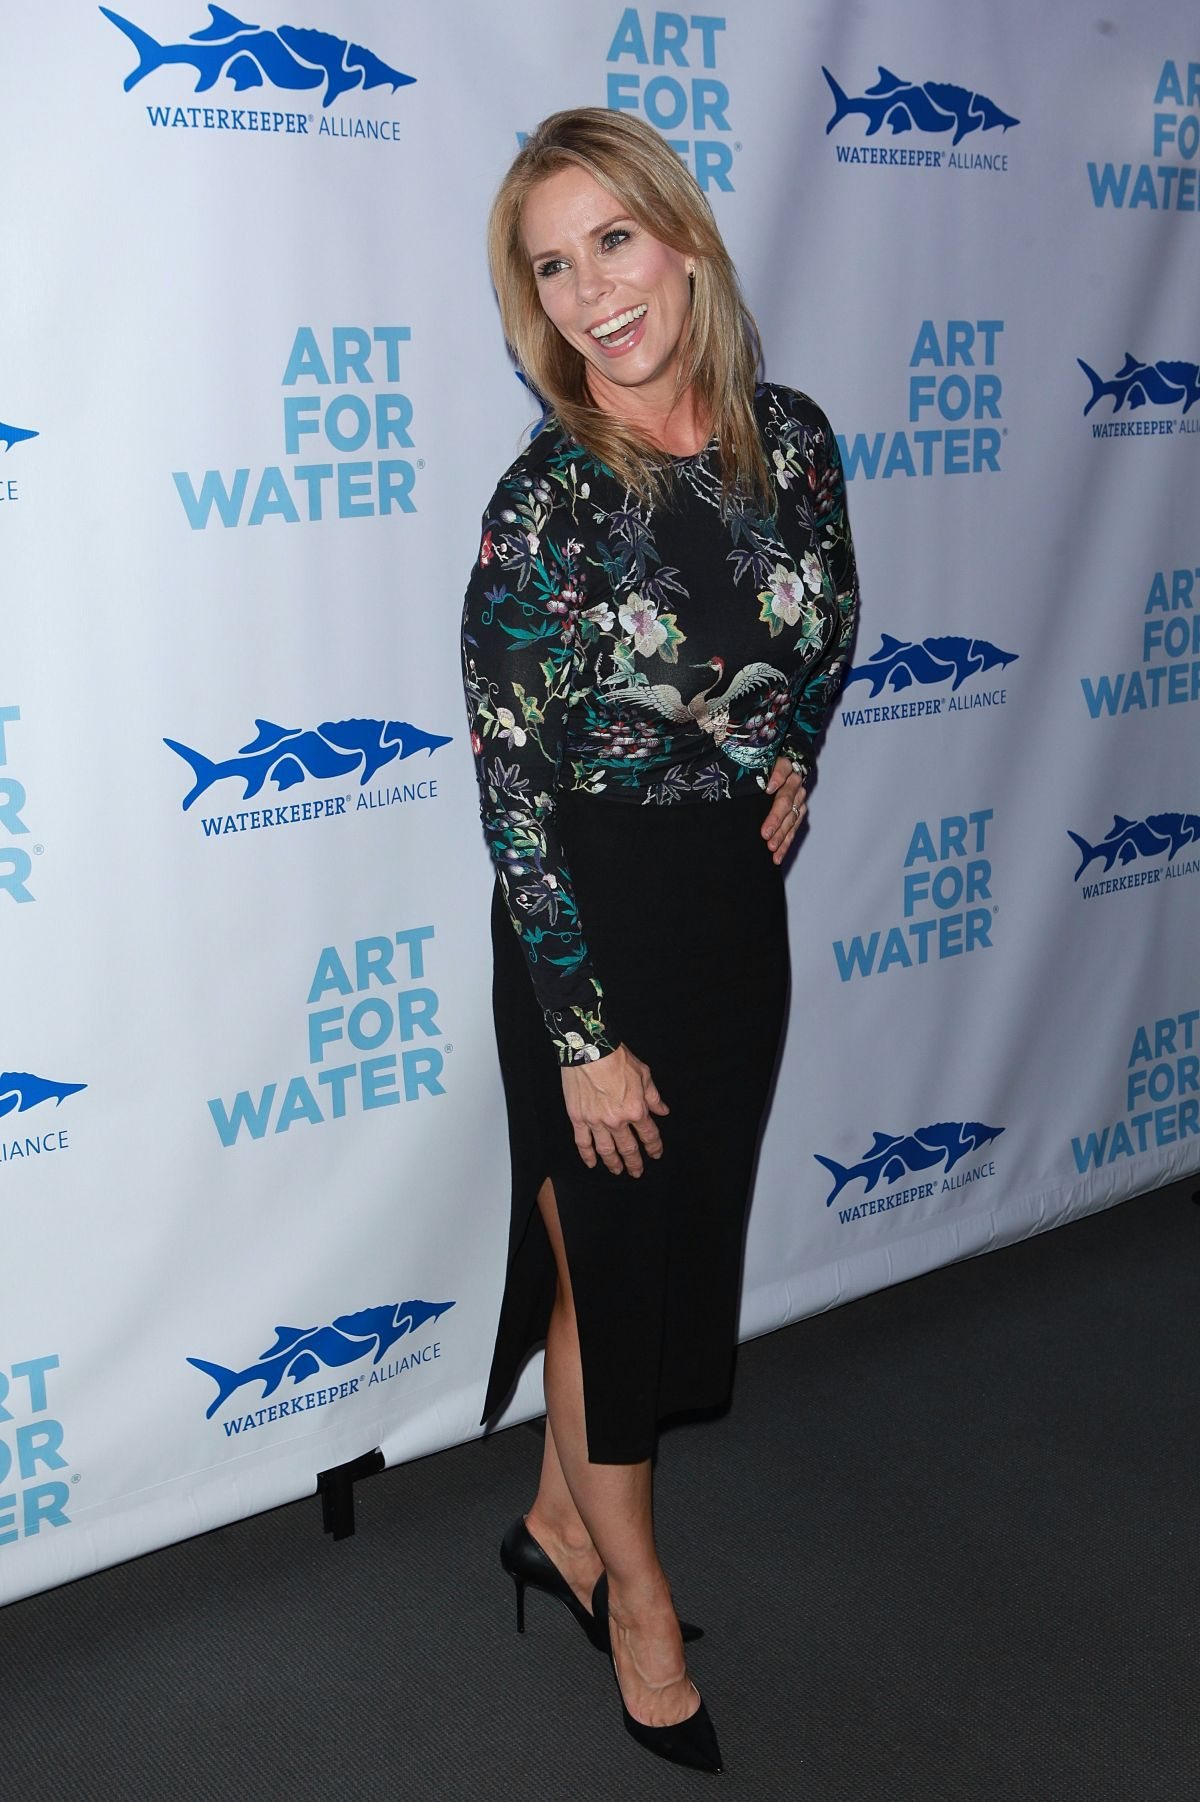 CHERYL HINES at Art for Water Benefiring Waterkeeper Alliance Charity in New York 02/06/2017